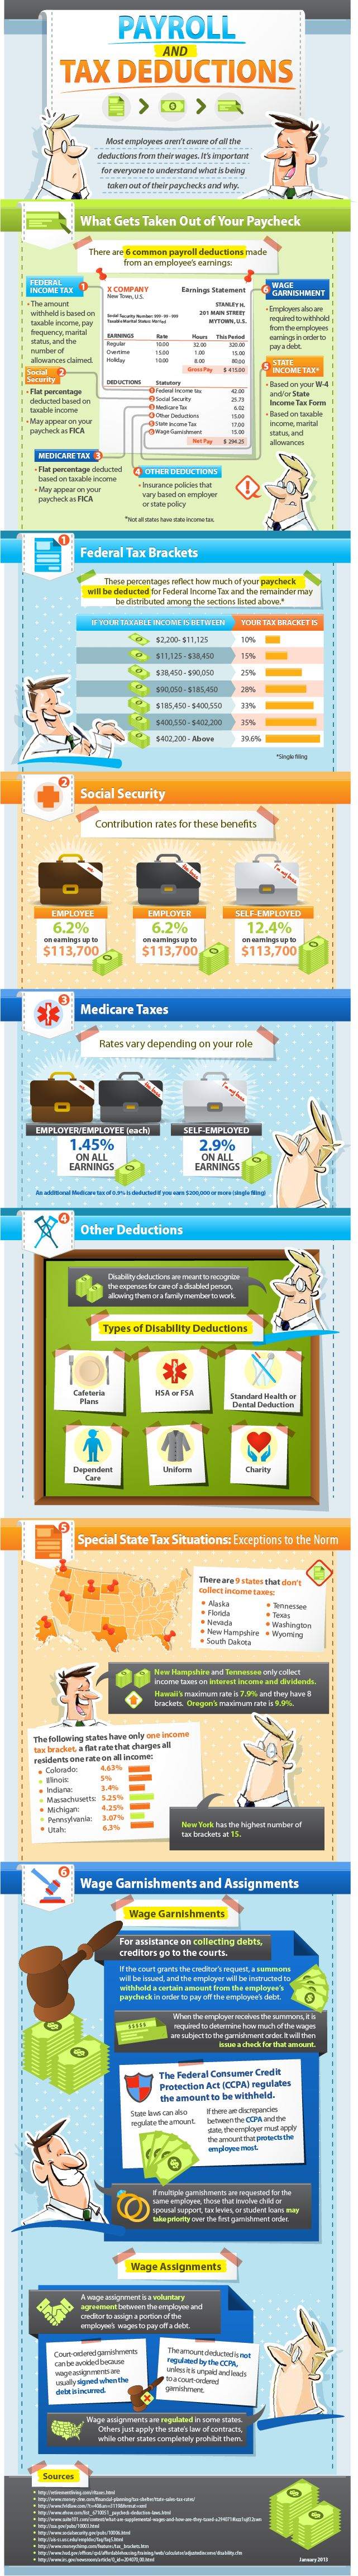 Payroll and TaxDeductions - Blog About Infographics and Data Visualization - Cool Infographics